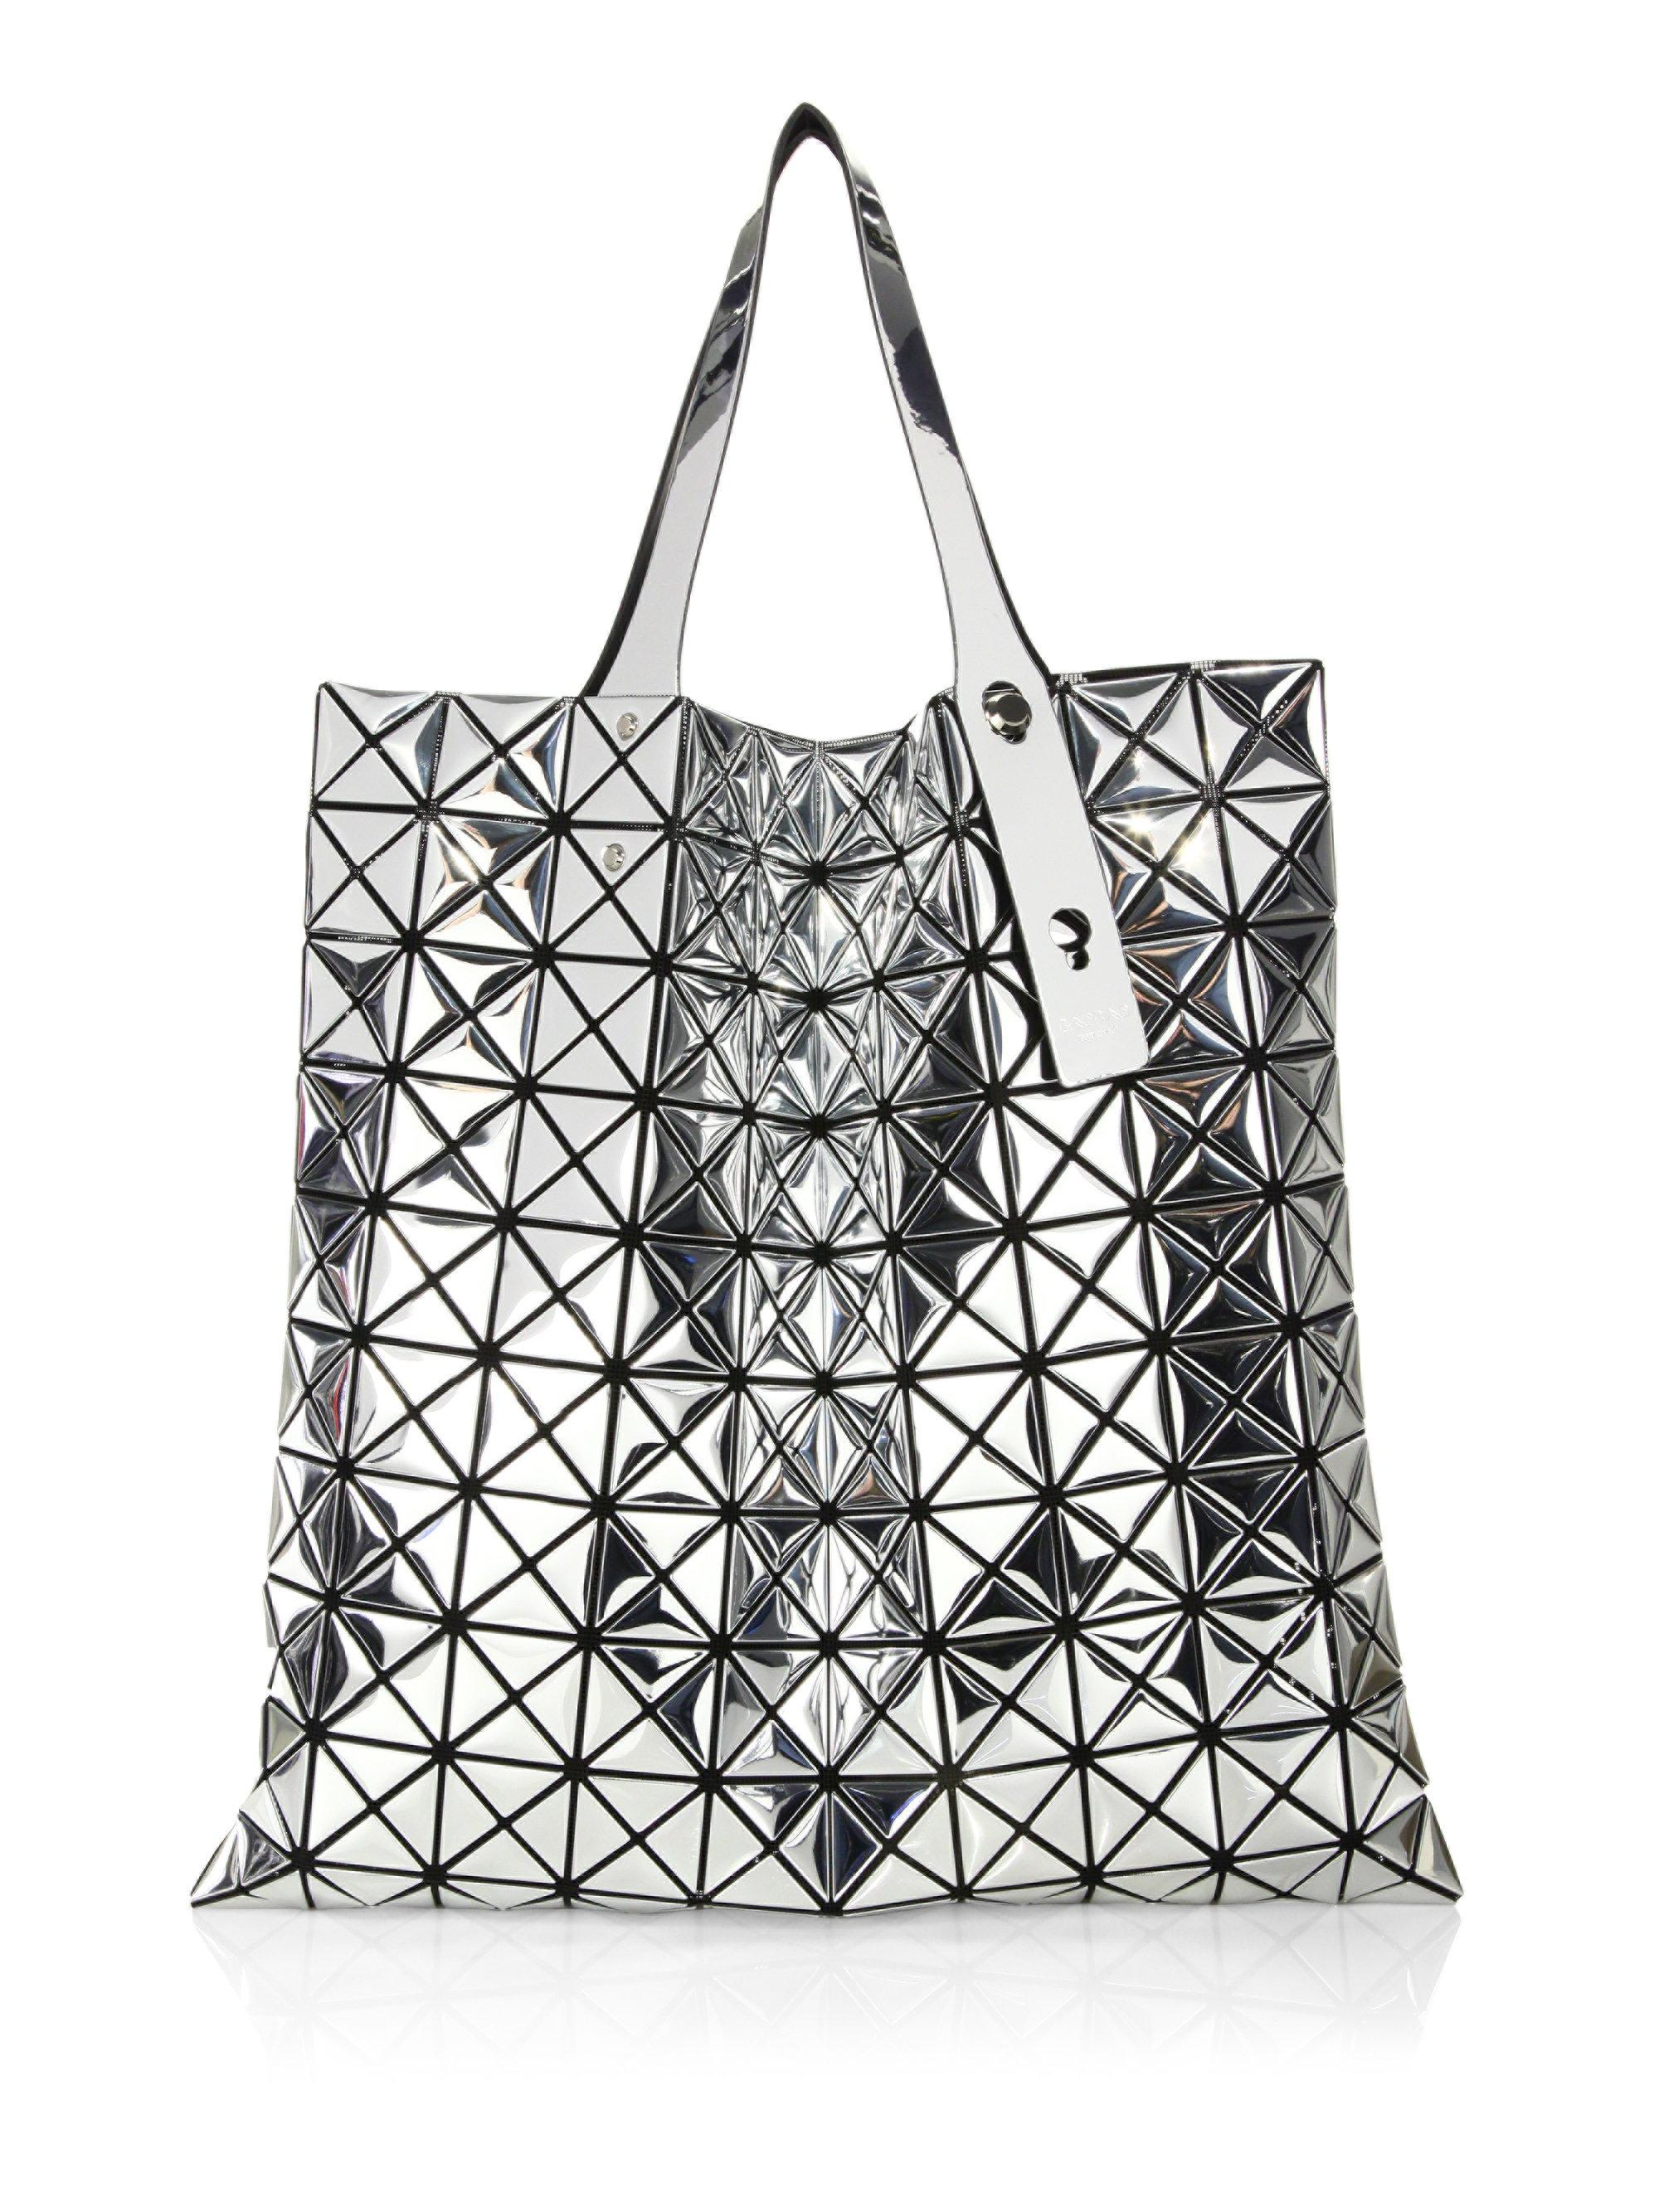 6640a099bfc8 Gallery. Previously sold at  Saks Fifth Avenue · Women s Bao Bao Issey  Miyake Prism ...